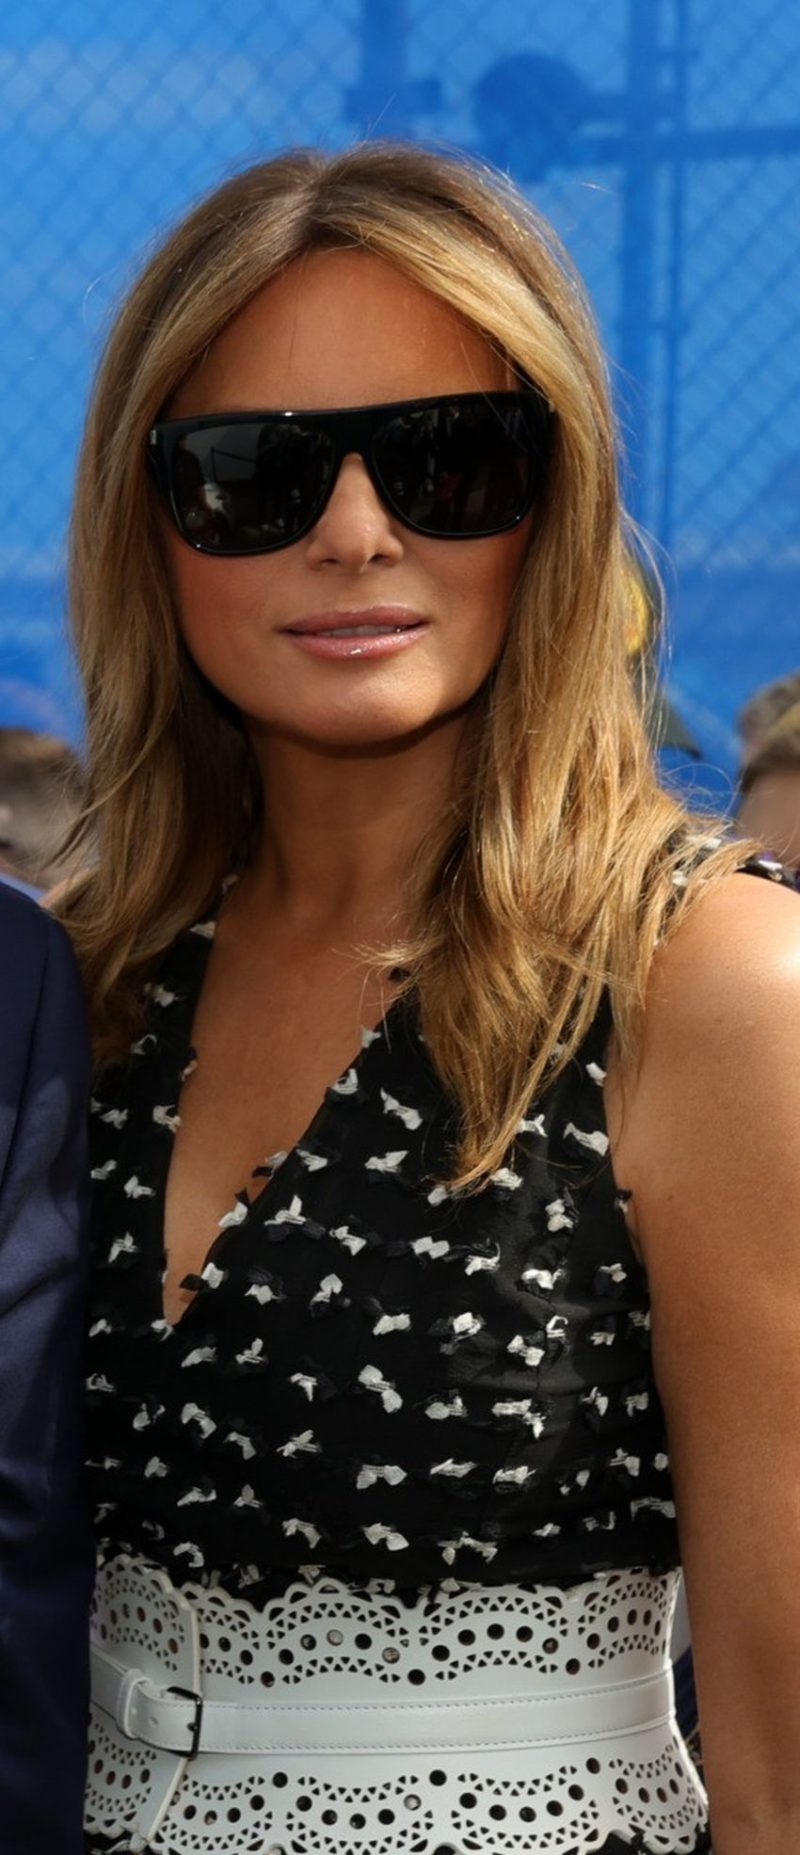 Melania Trump Held Another Class on Fashion - DemotiX